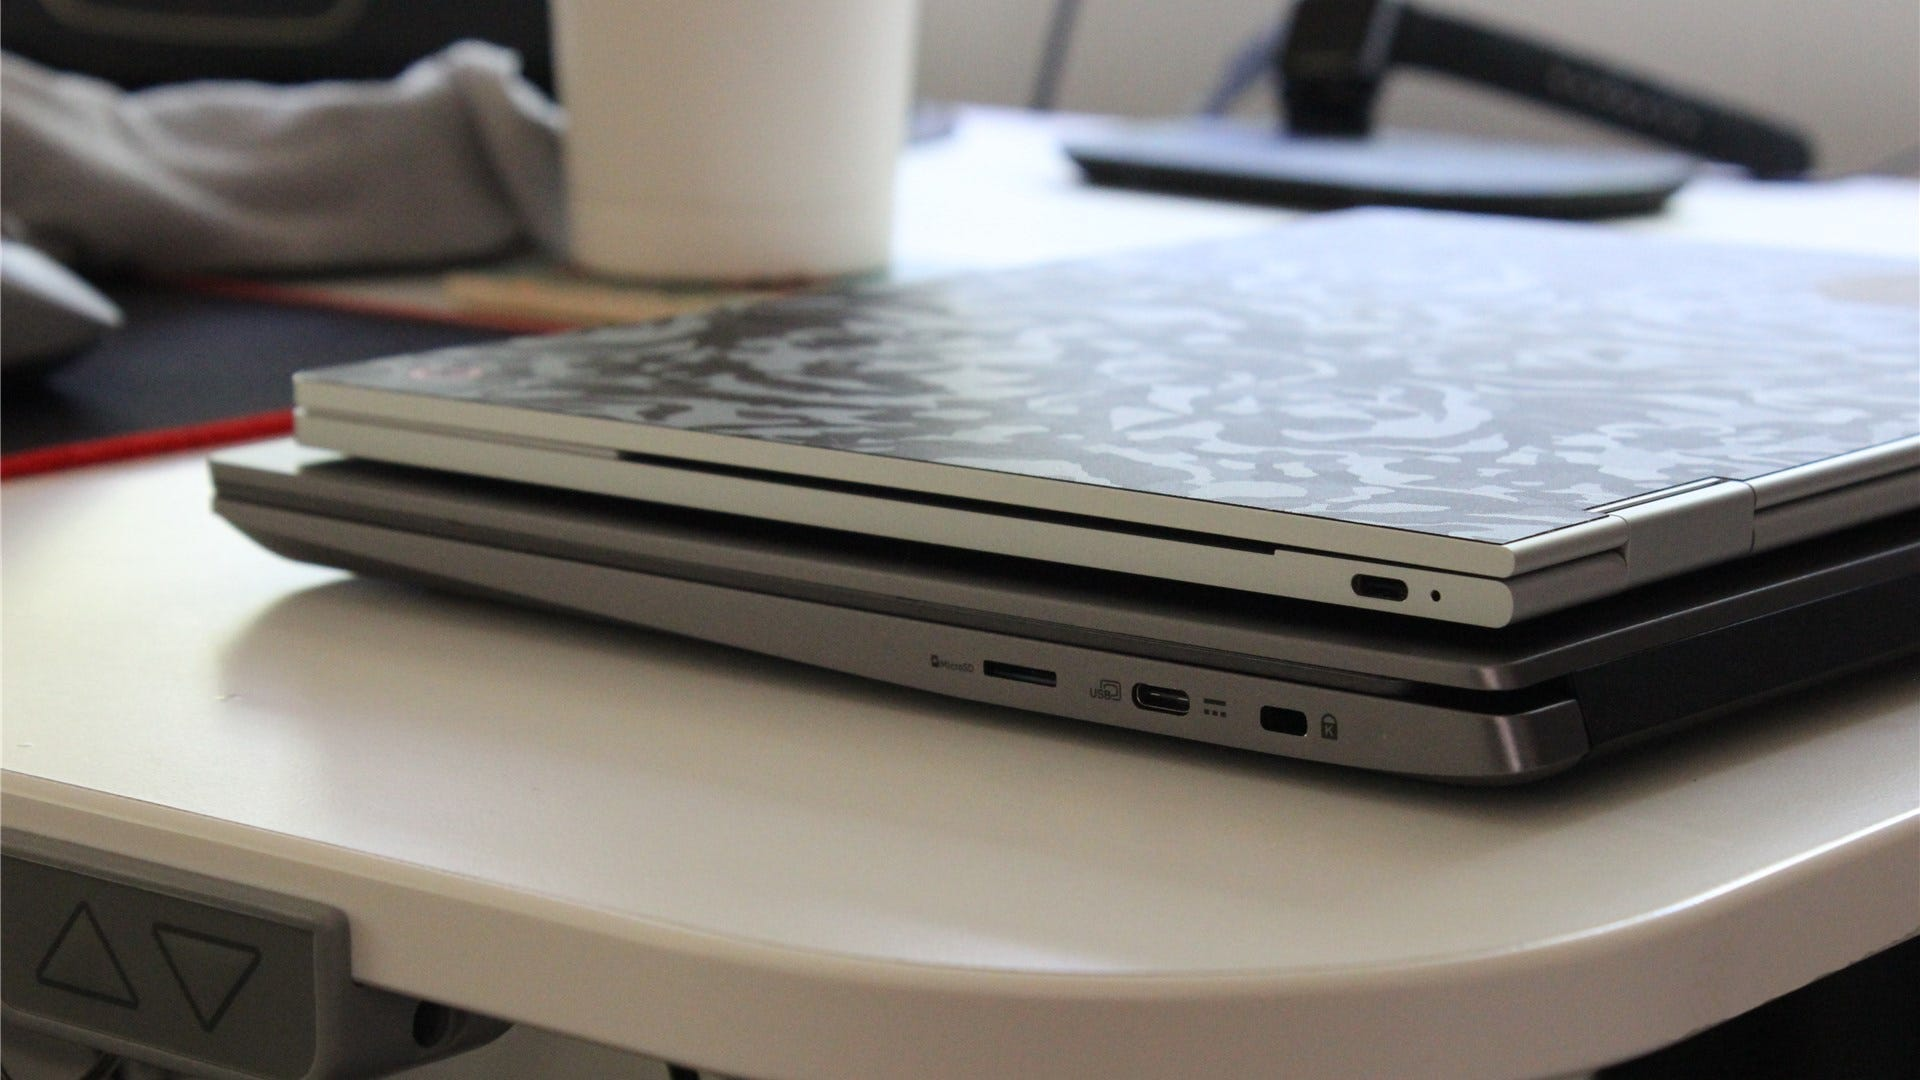 Google Pixelbook vs. Acer Chromebook 714 thickness comparison